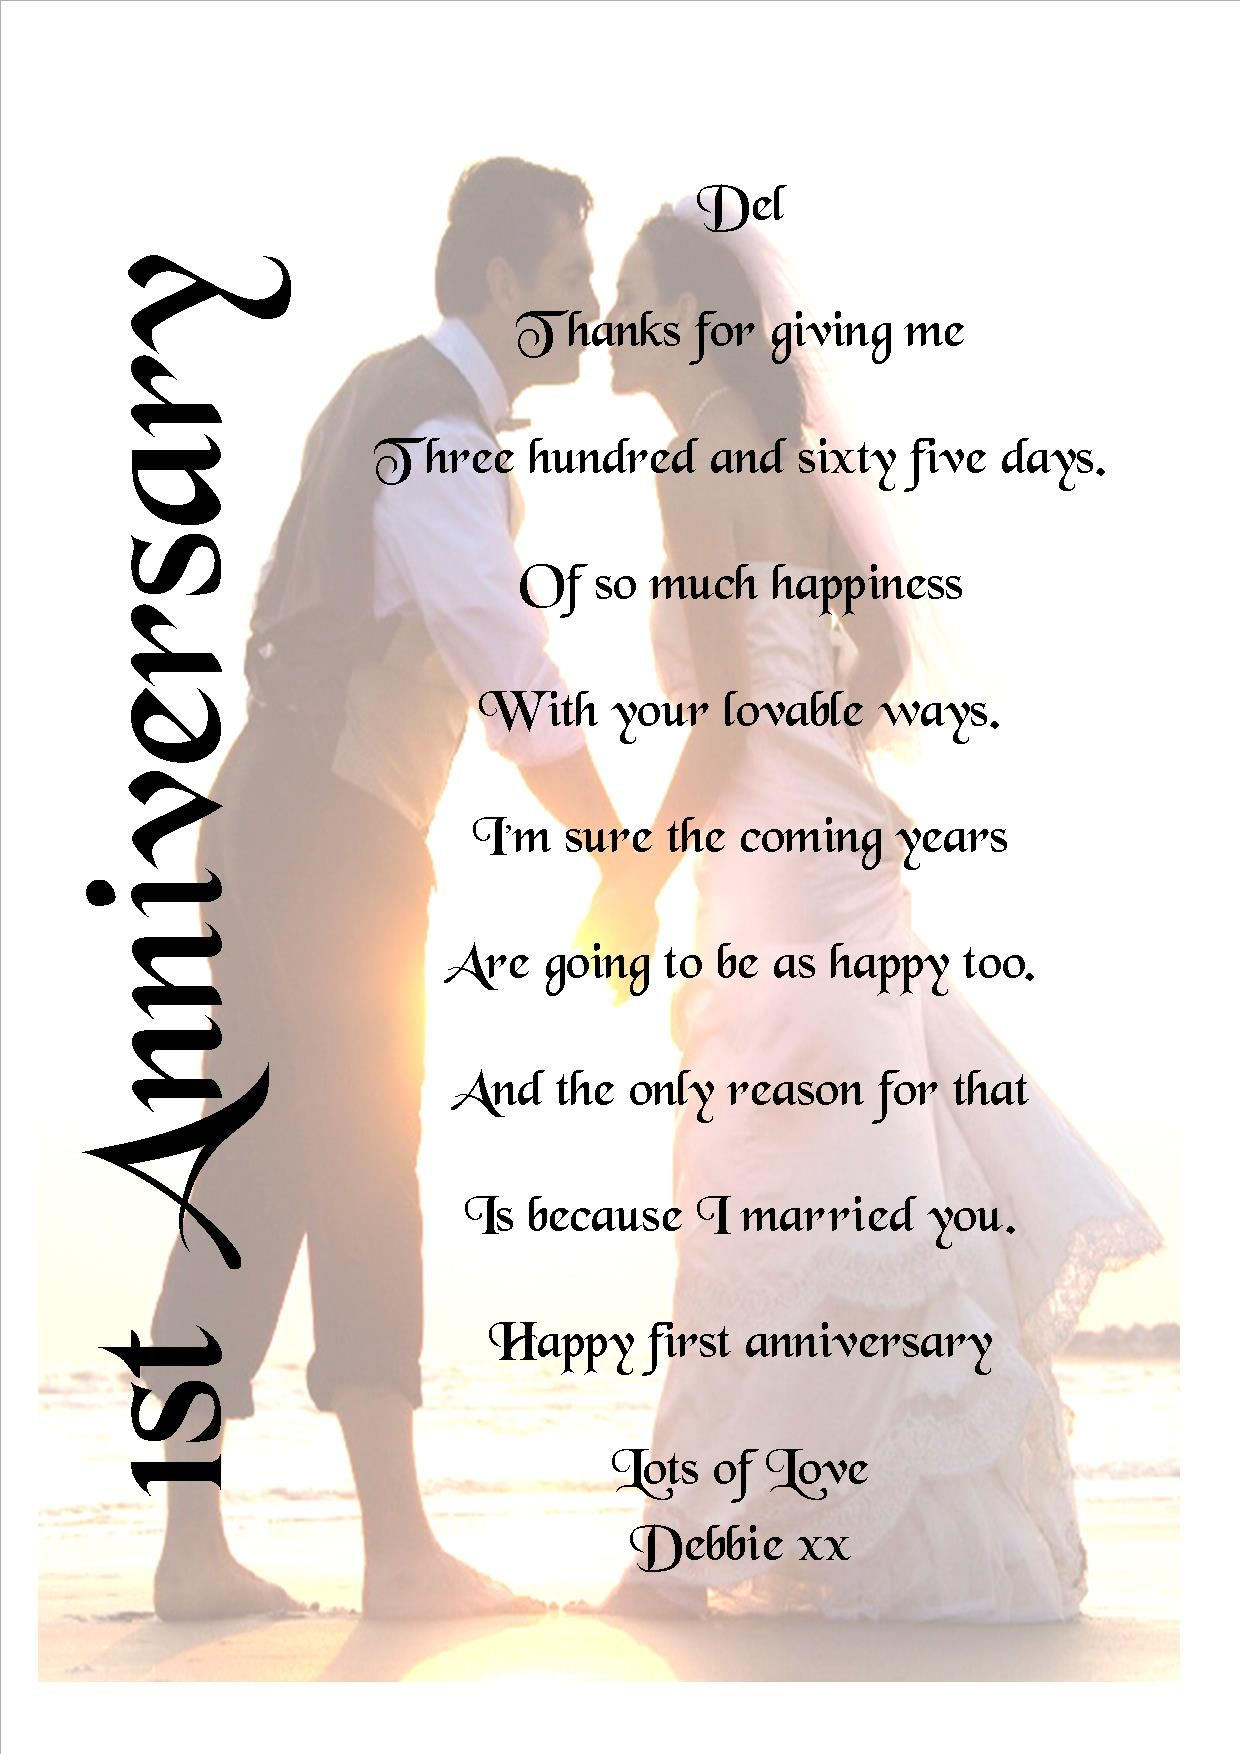 First Wedding Anniversary.First Wedding Anniversary Poem Print Various Sizes Card Or Laminated Personalised